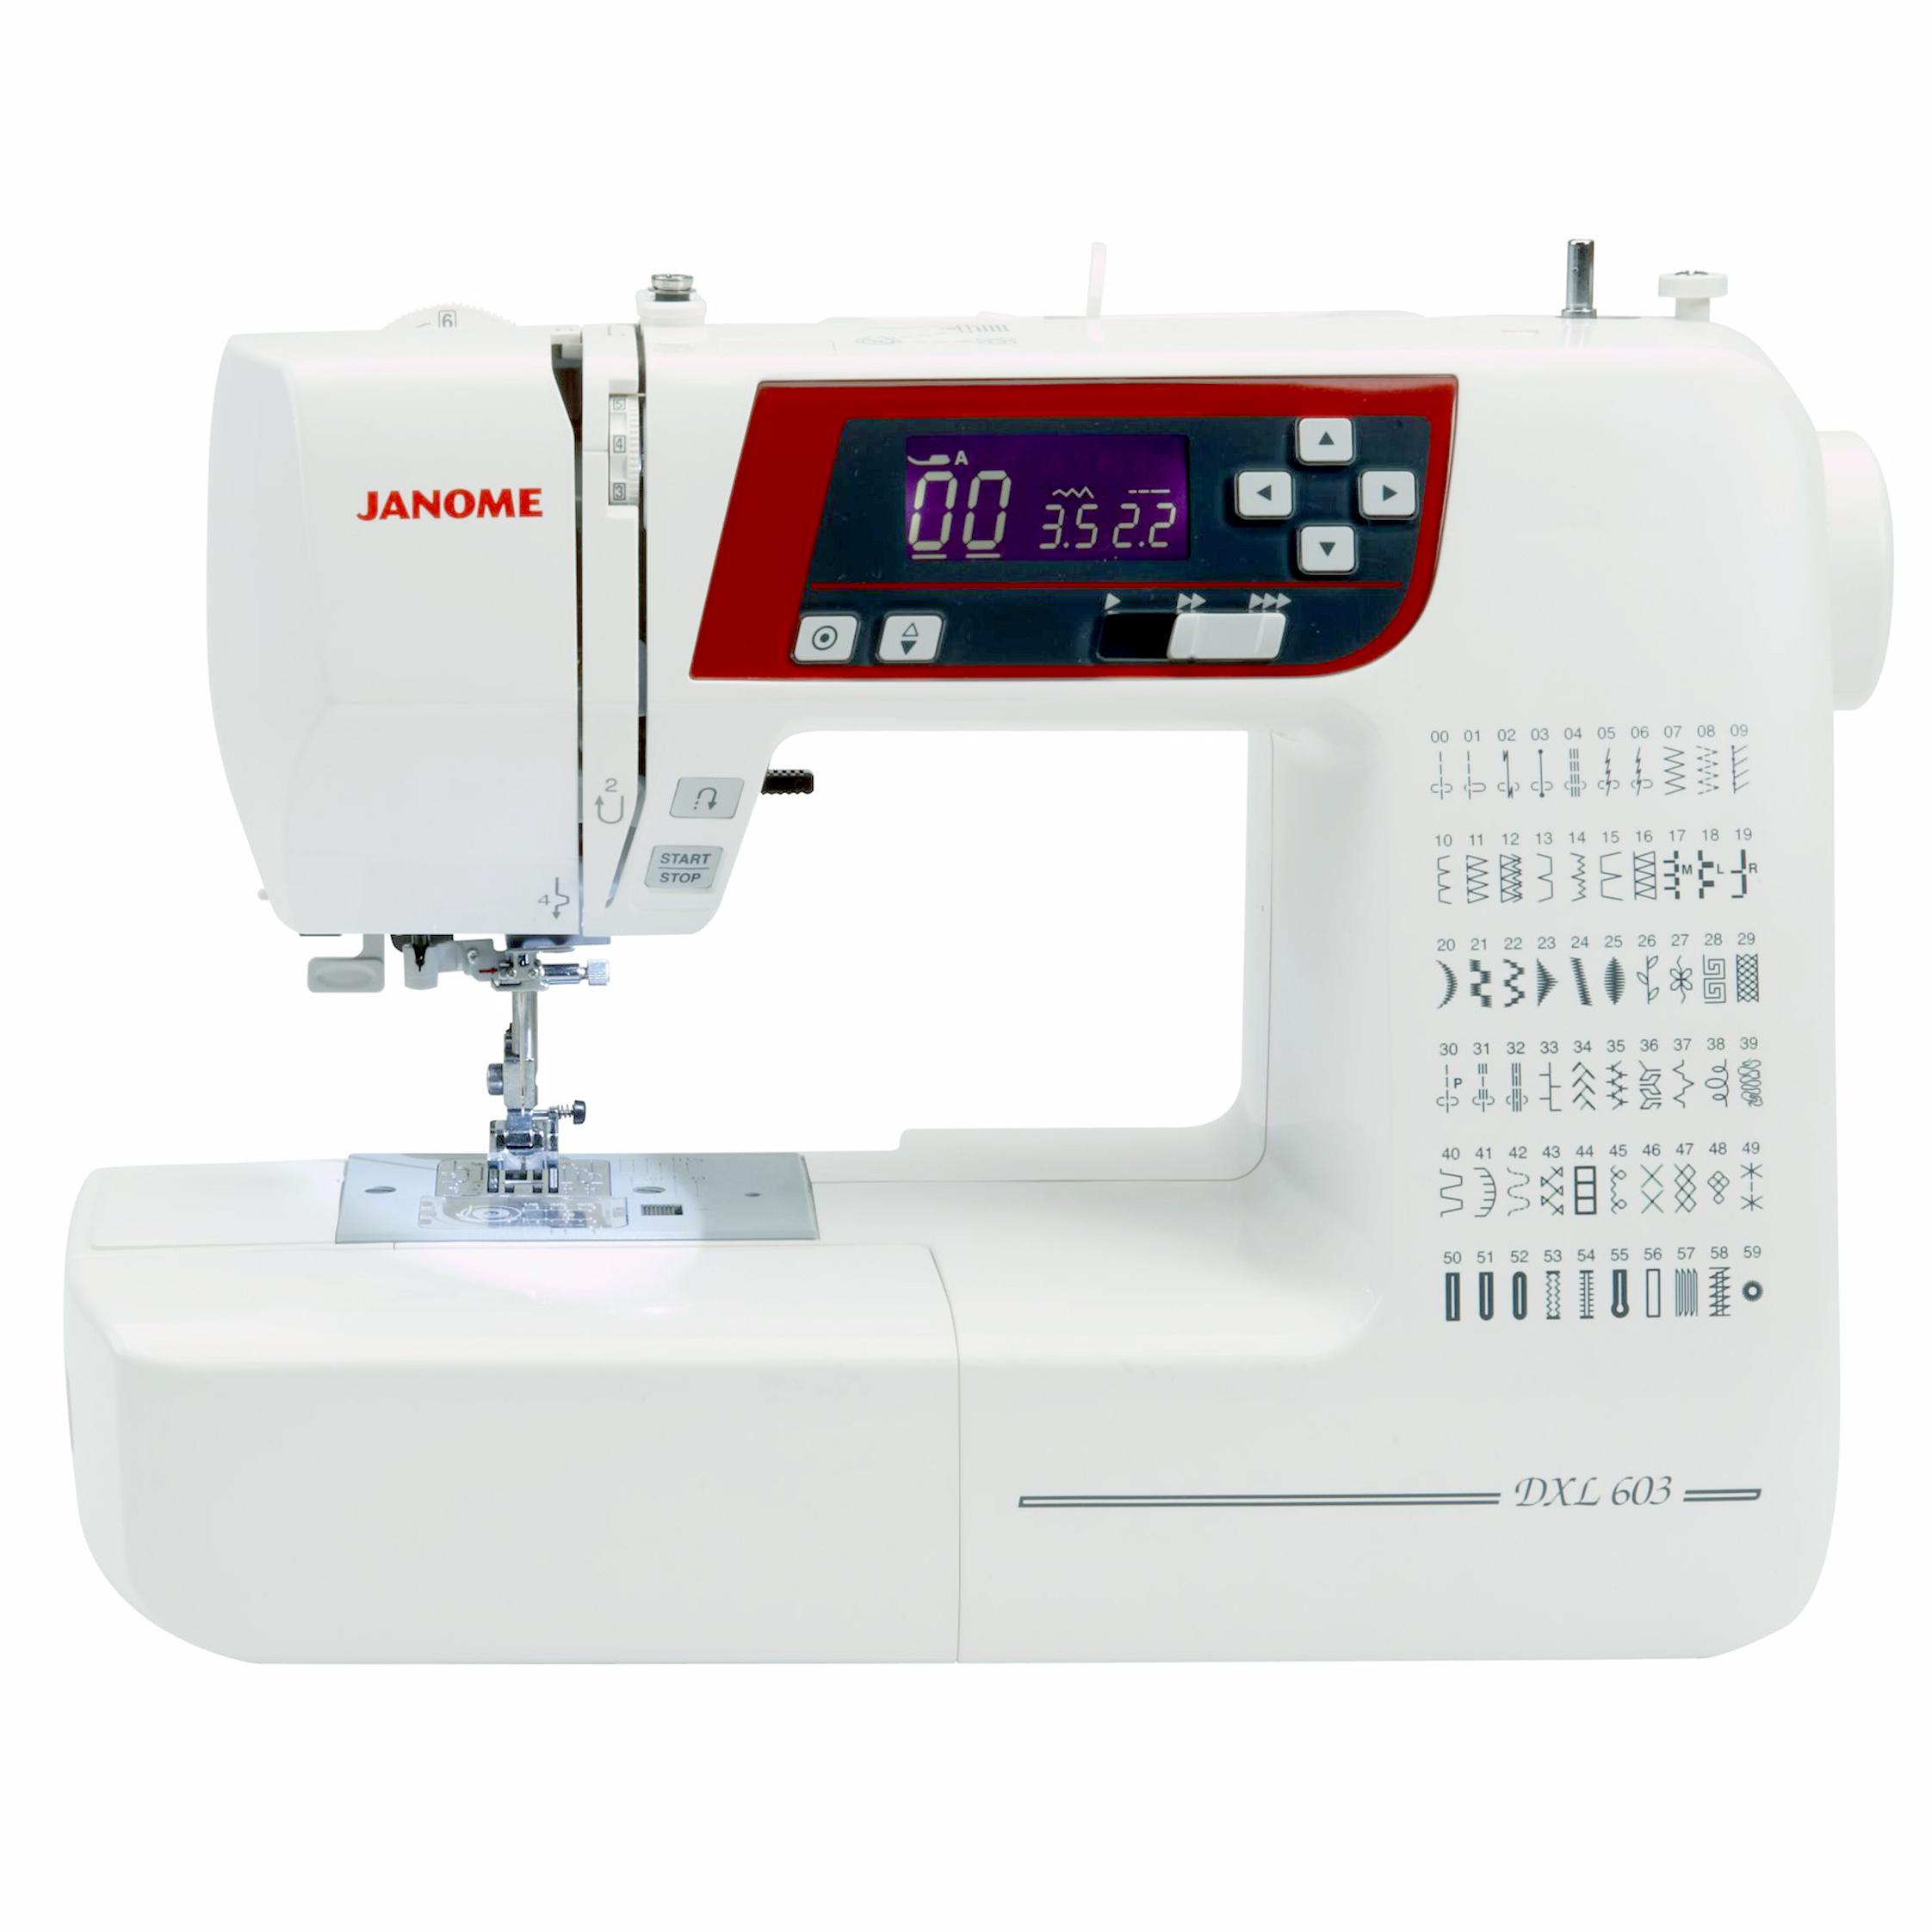 Janome dxl603 frank nutt sewing machines ltd buy online for Janome memory craft 9500